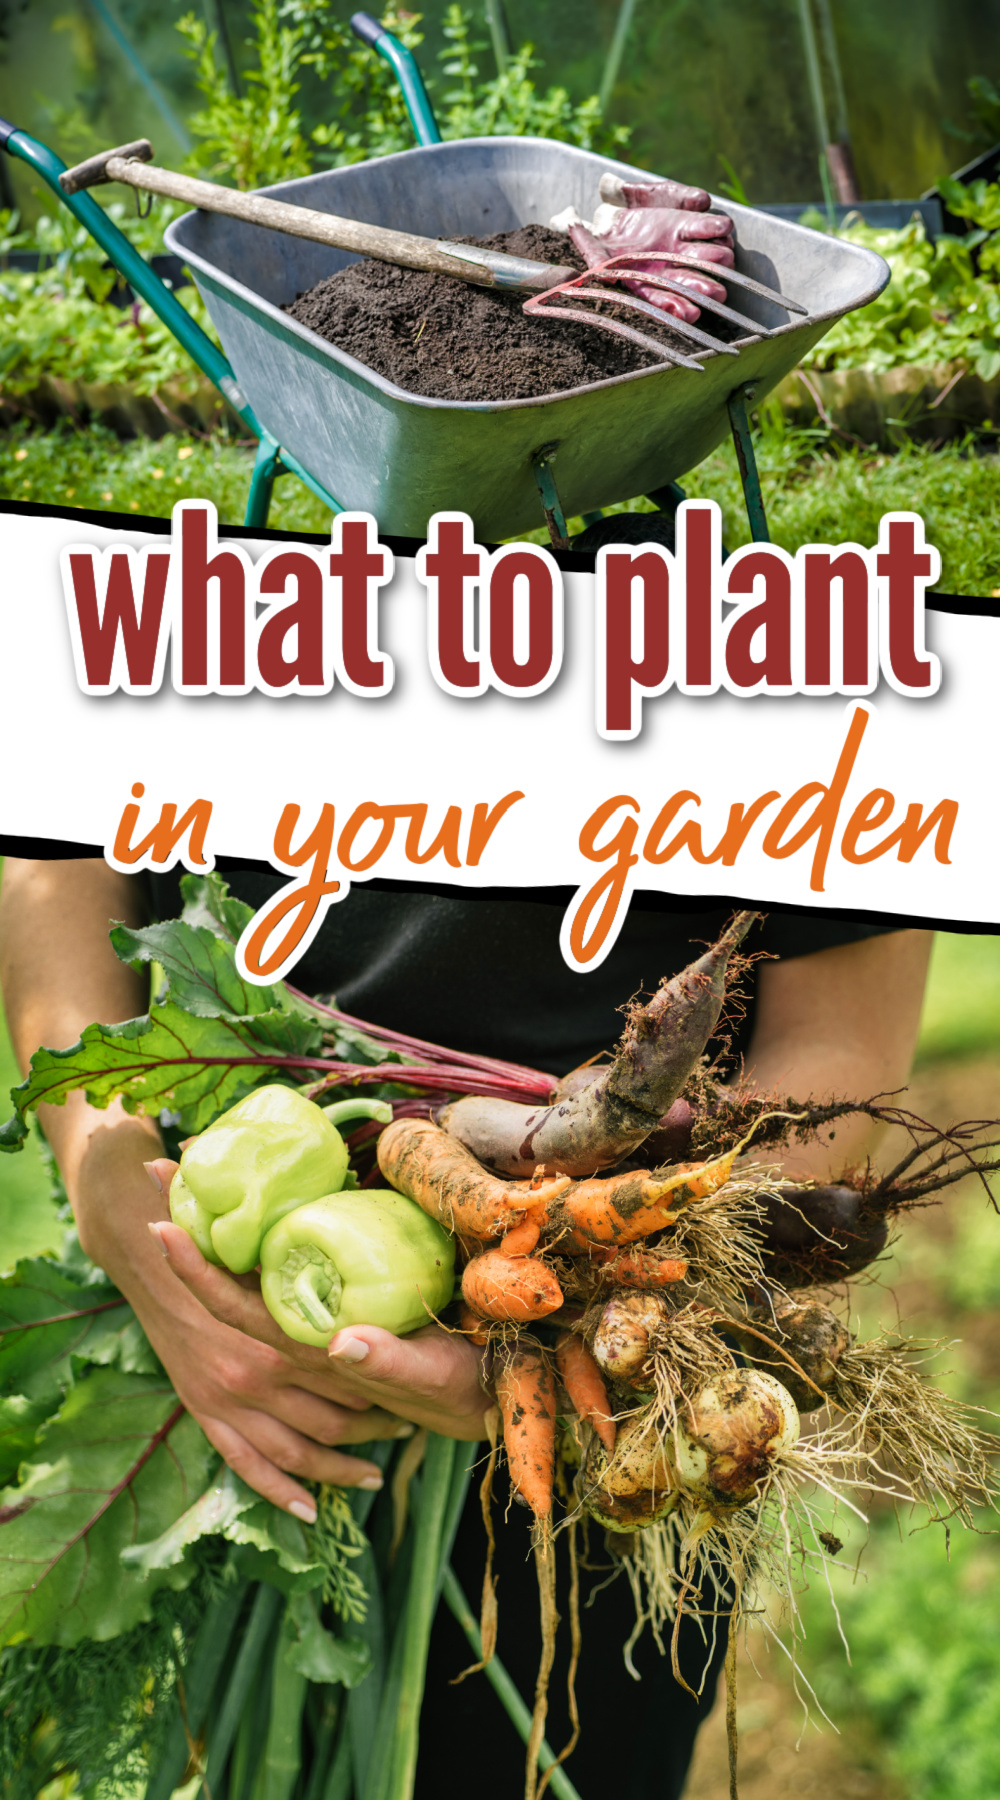 what should i plant in my garden - gardening tips for beginners